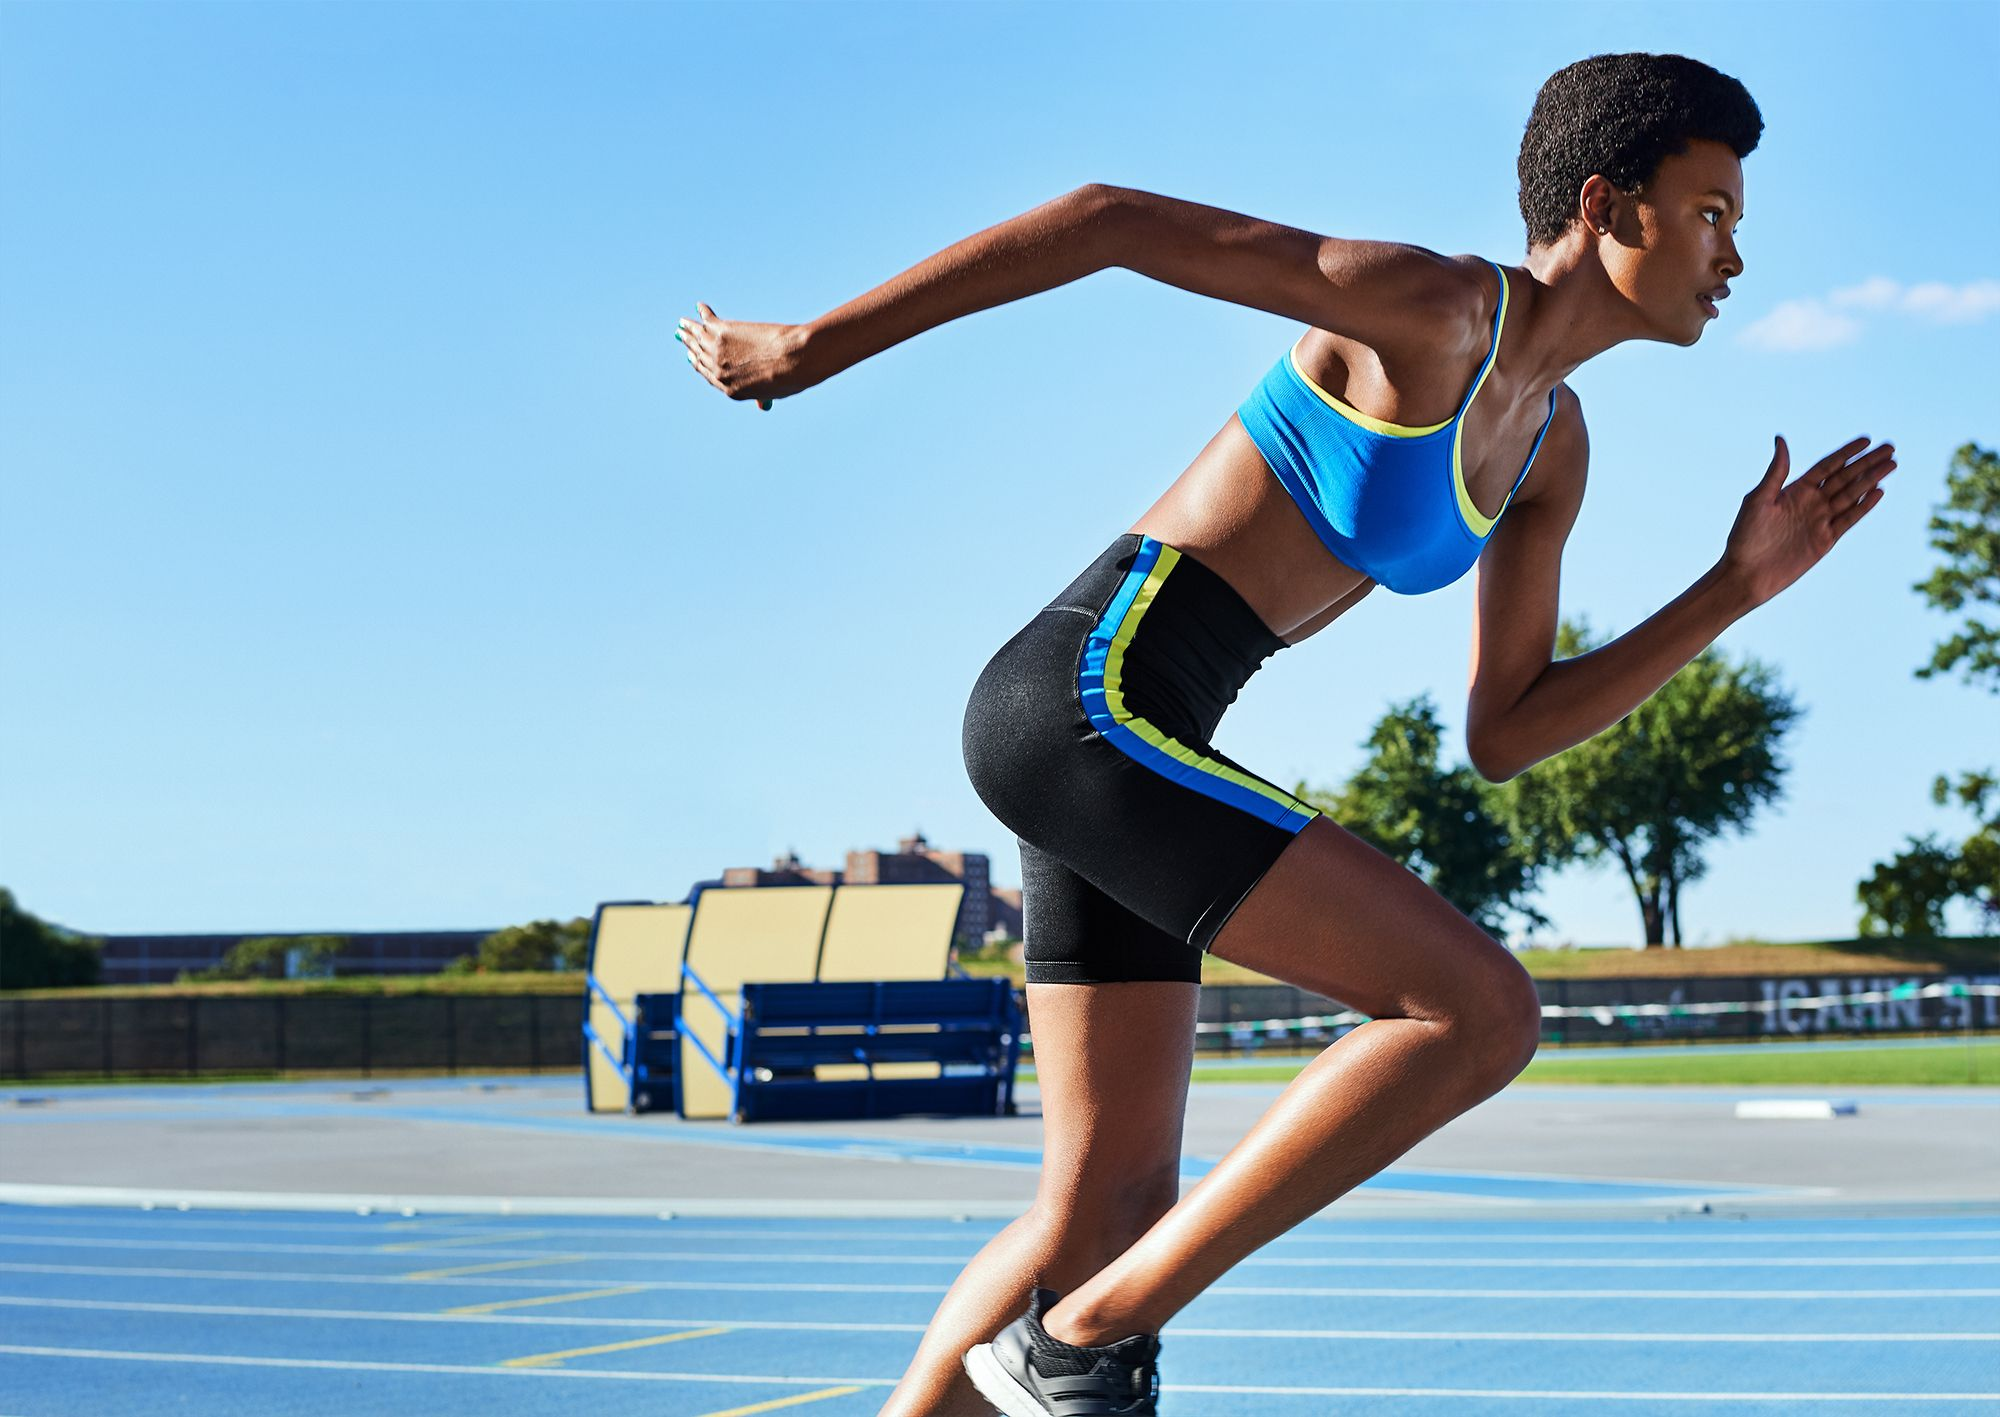 Doing Just These 6 Sprint Workouts Is Enough To Make You Faster, According To Research